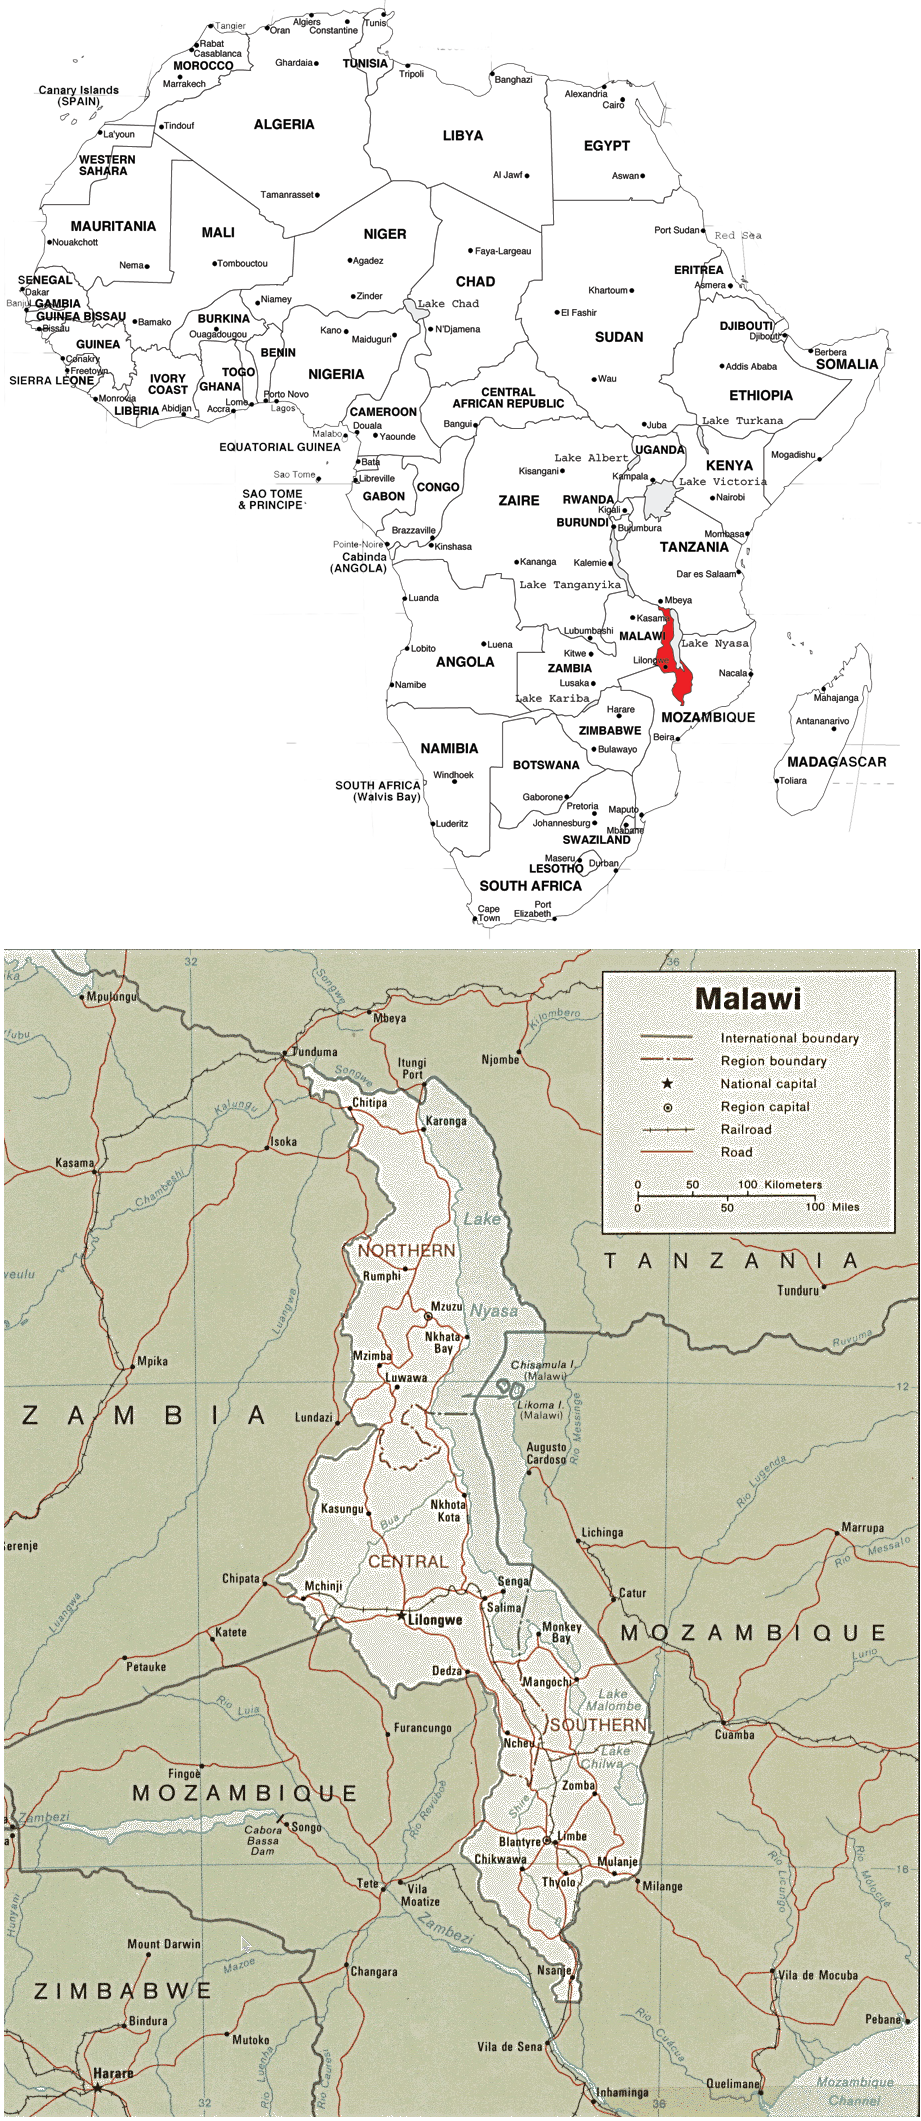 "• MALAWI,  a country slightly smaller than Pennsylvania, is located in East-Central, Sub-Saharan Africa. •  Population  is 15 million--one of the continent's most densely populated countries •  75% rural, 25% urban --half the population is under 18 years of age. •  75% live in extreme poverty  ($1.25 per day) • 65% are unable to meet their basic needs •  Vast majority are subsistence farmers  (""if they don't grow it; they don't have it."") • Only  36% have access to safe water  • Only  8% have access to electricity  •  Estimated HIV infection rate  among adults (age 15-49) is 10.6%  Click here for a detailed   Malawi Country Profile"